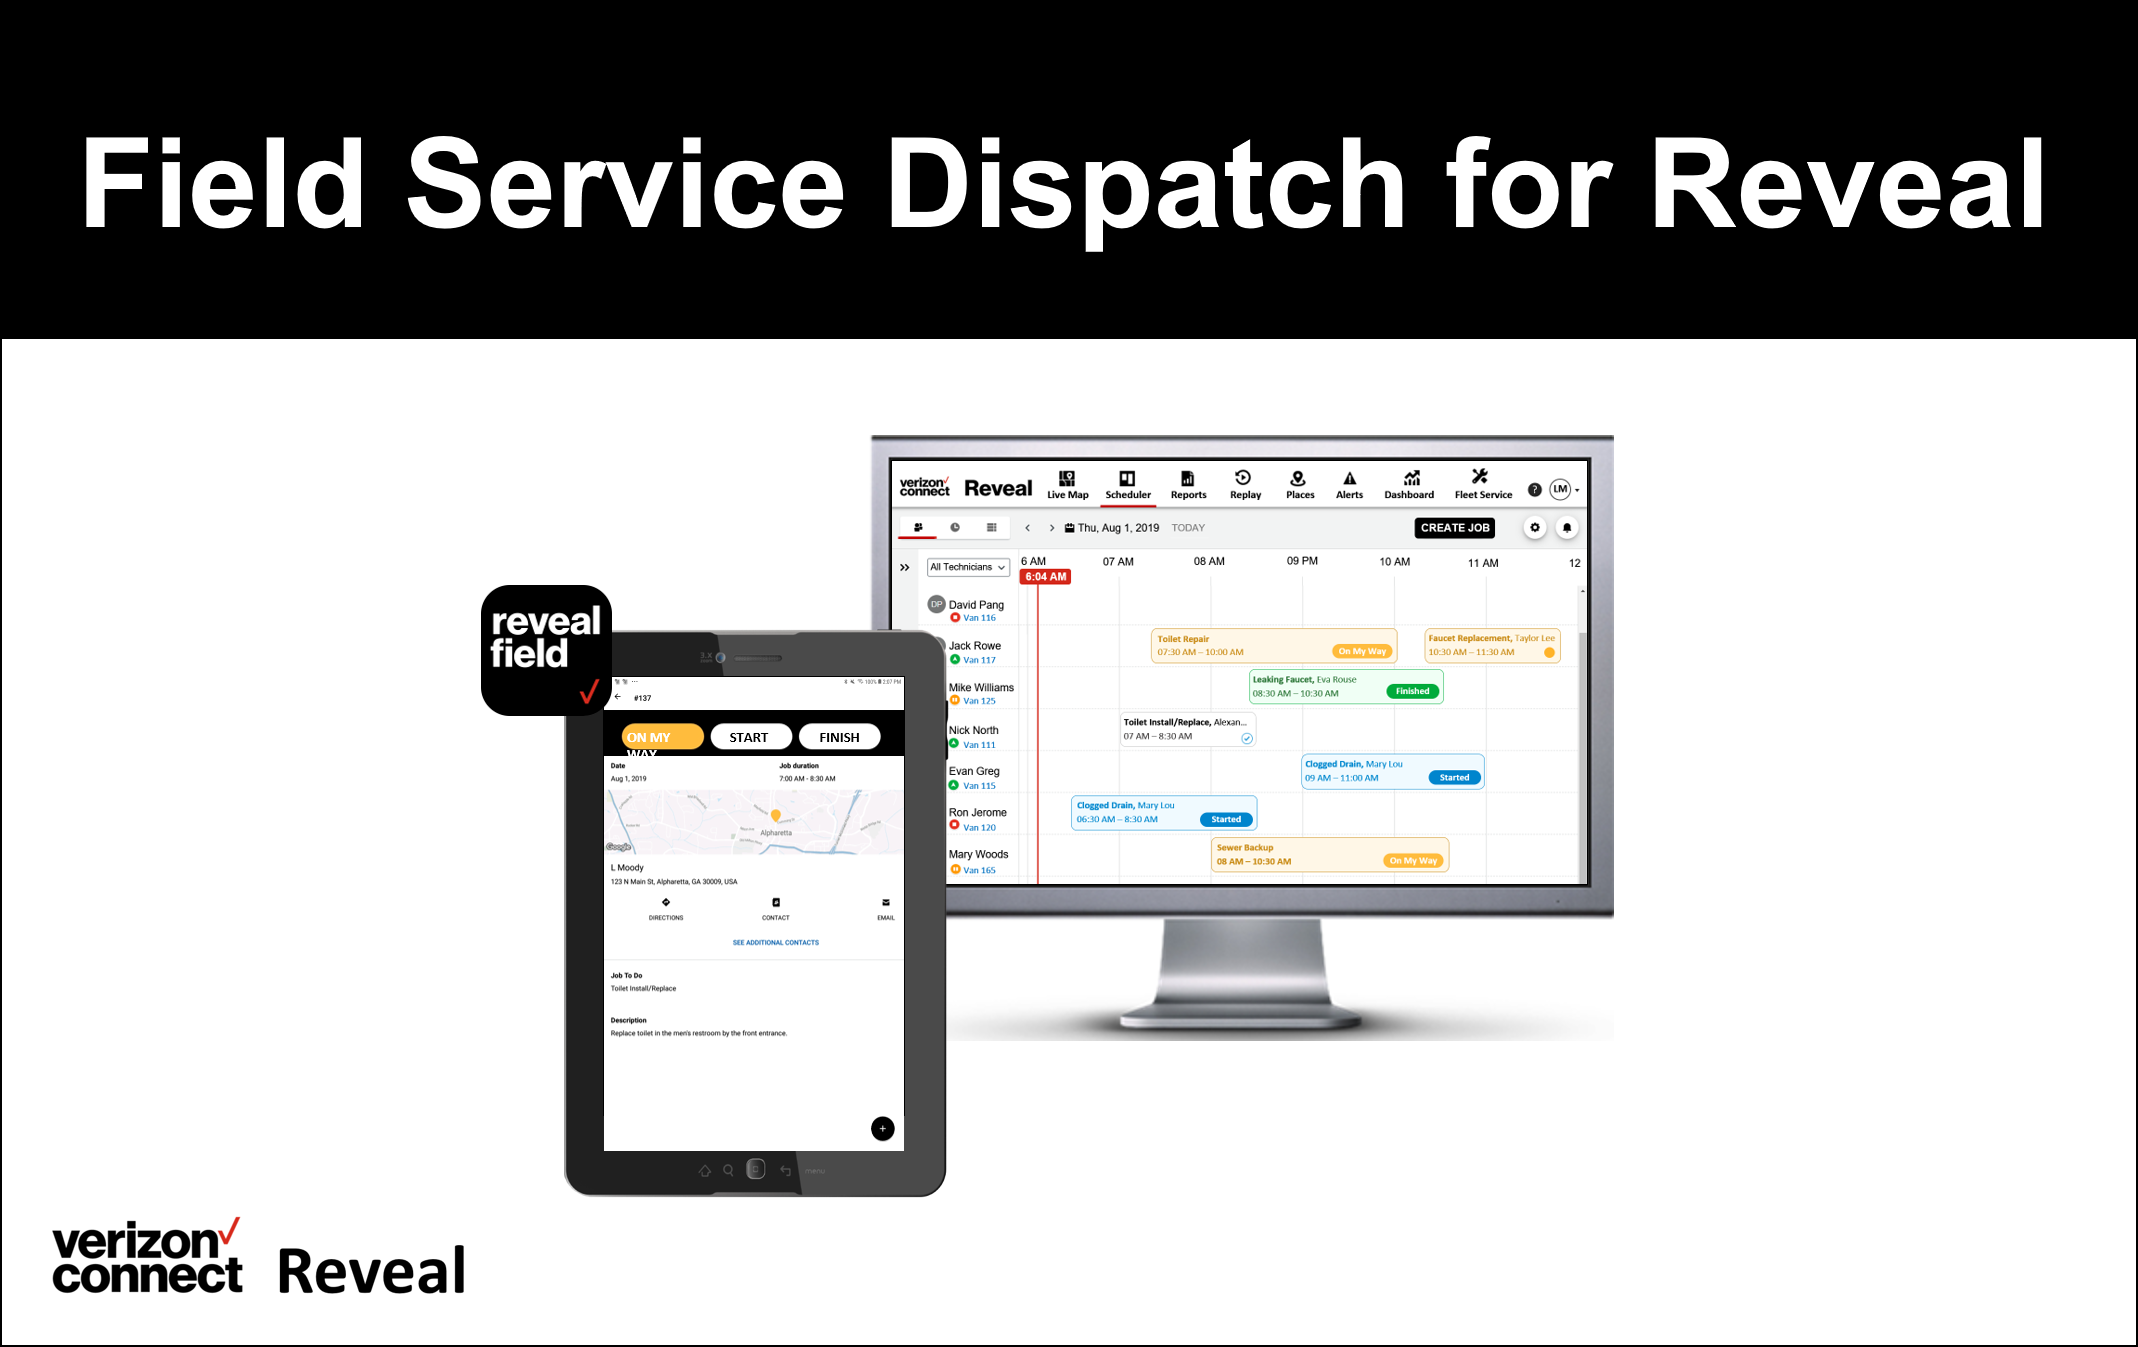 Field Service Dispatch for Reveal